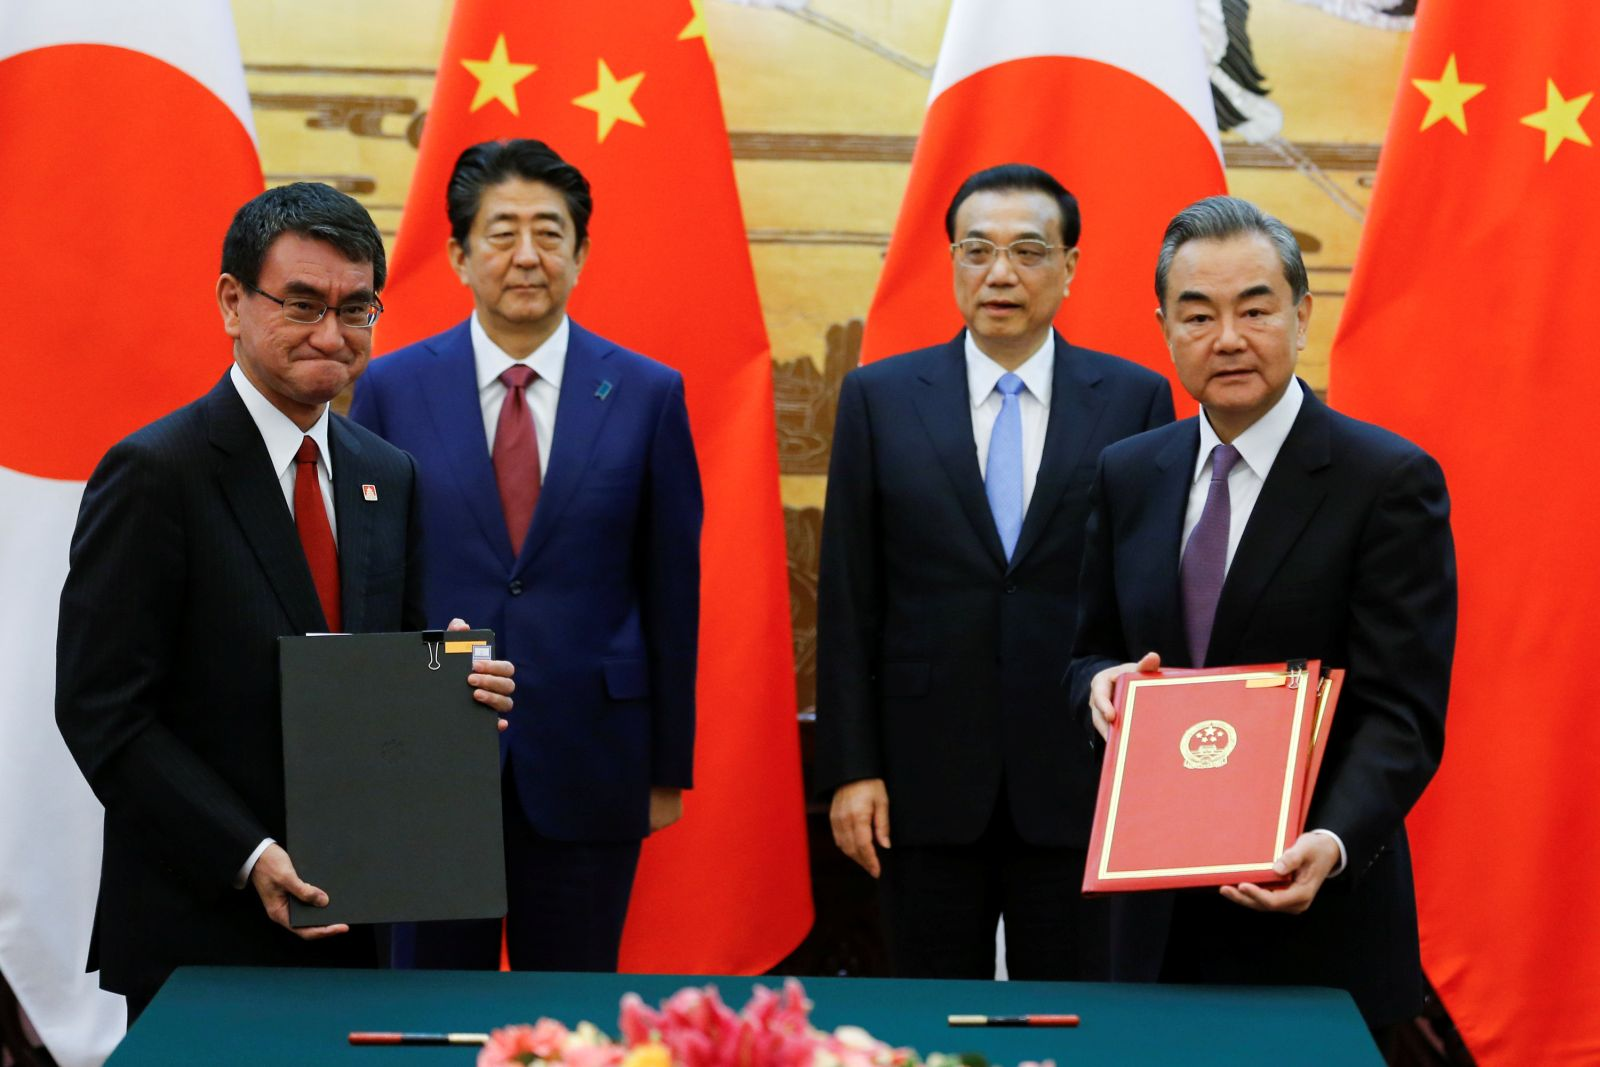 Shinzo Abe in China: Risky Move or Well-Thought-Out Strategy?